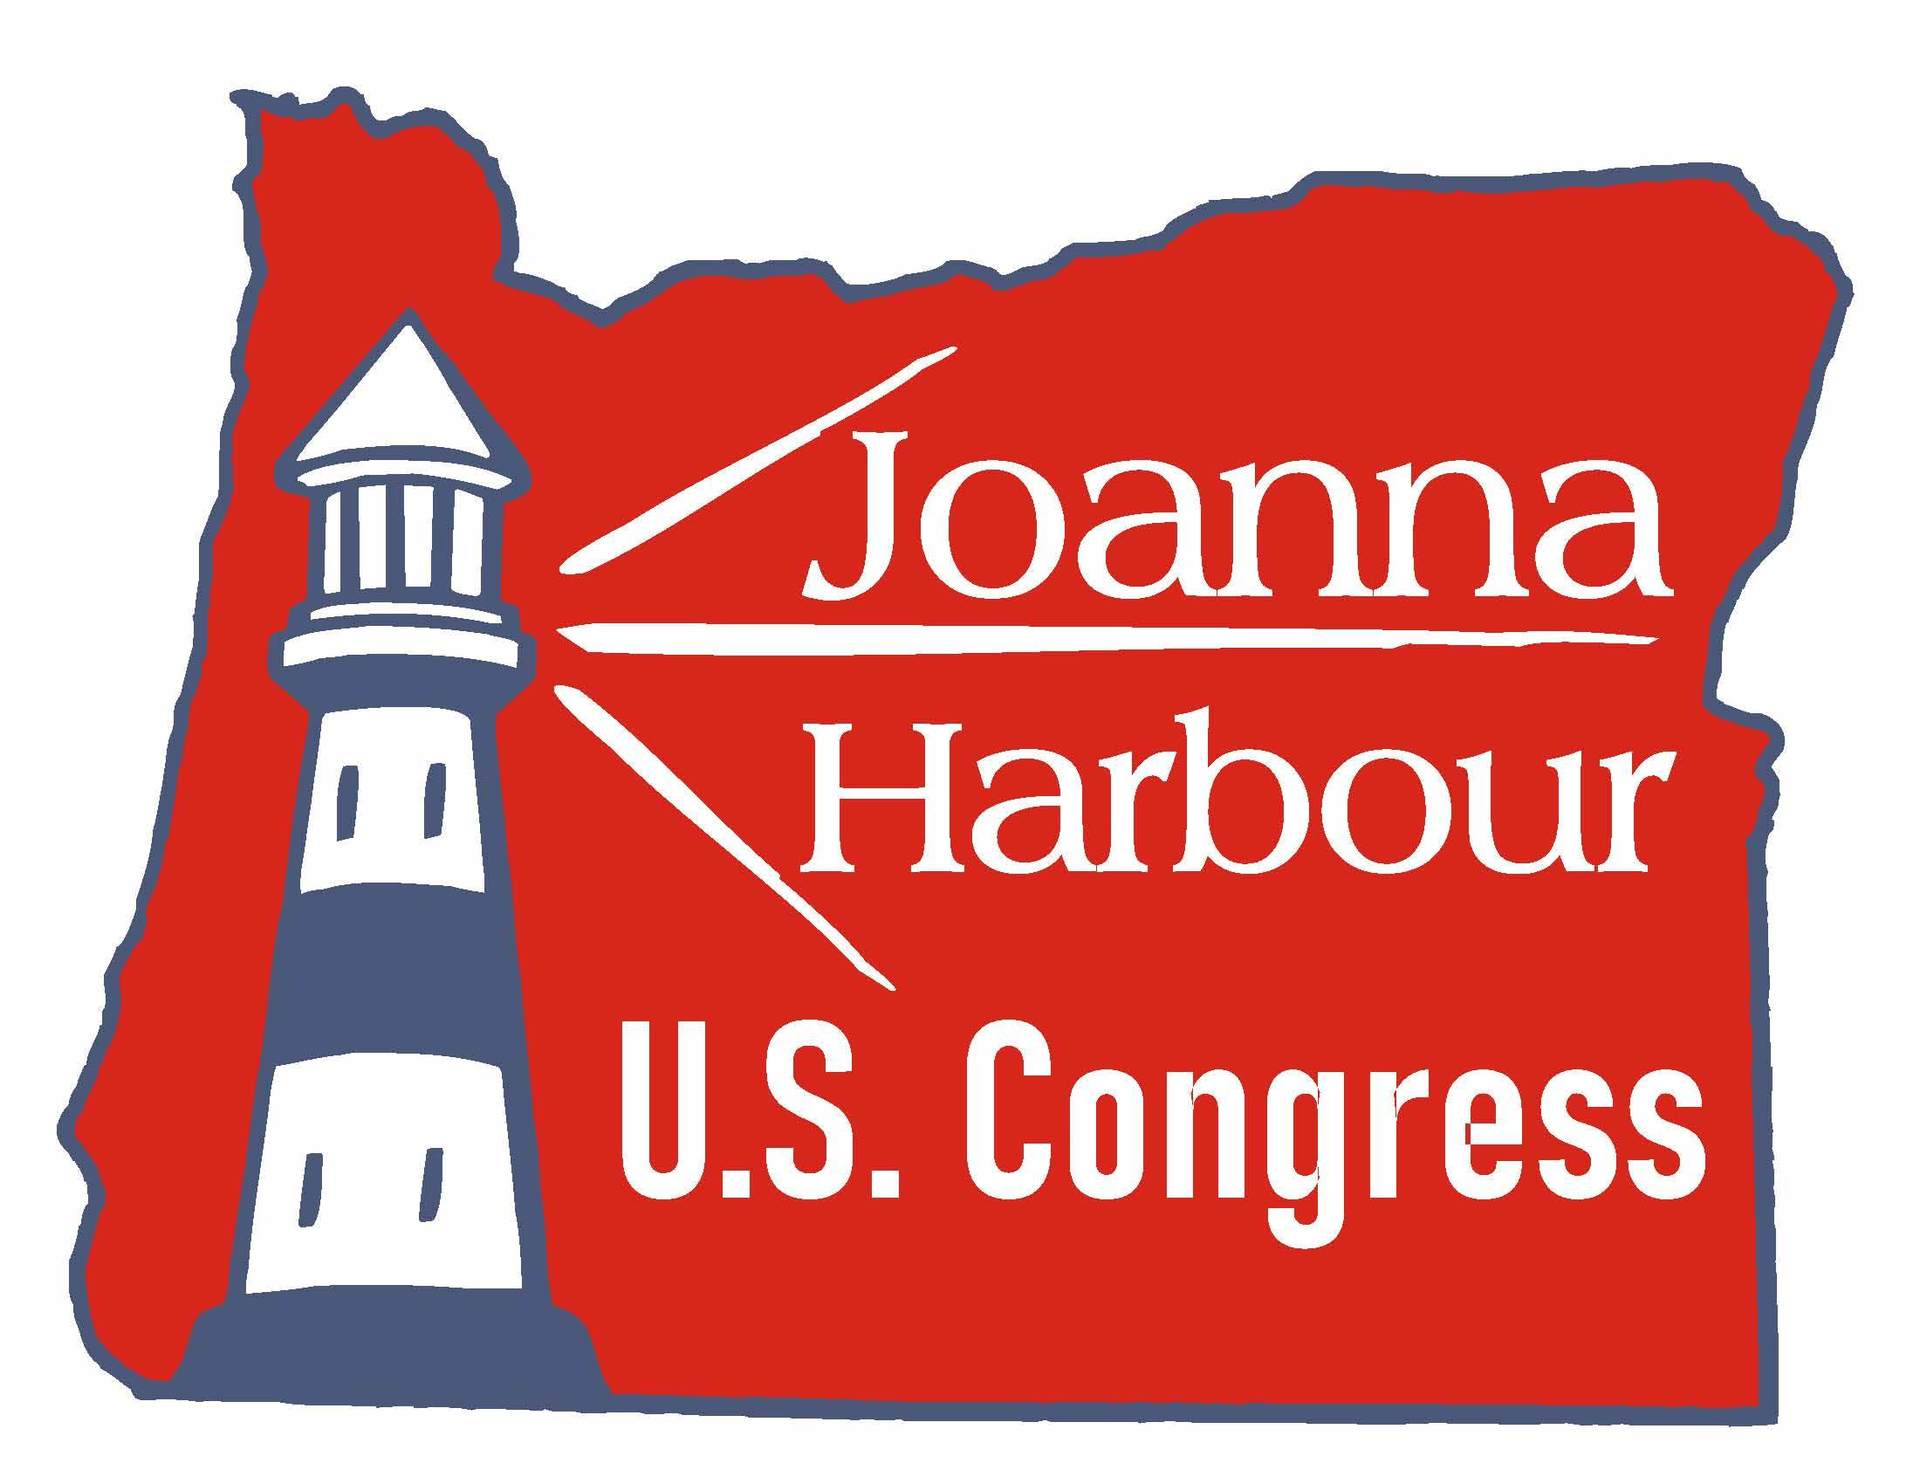 Joanna harbour 4 congress sign 2